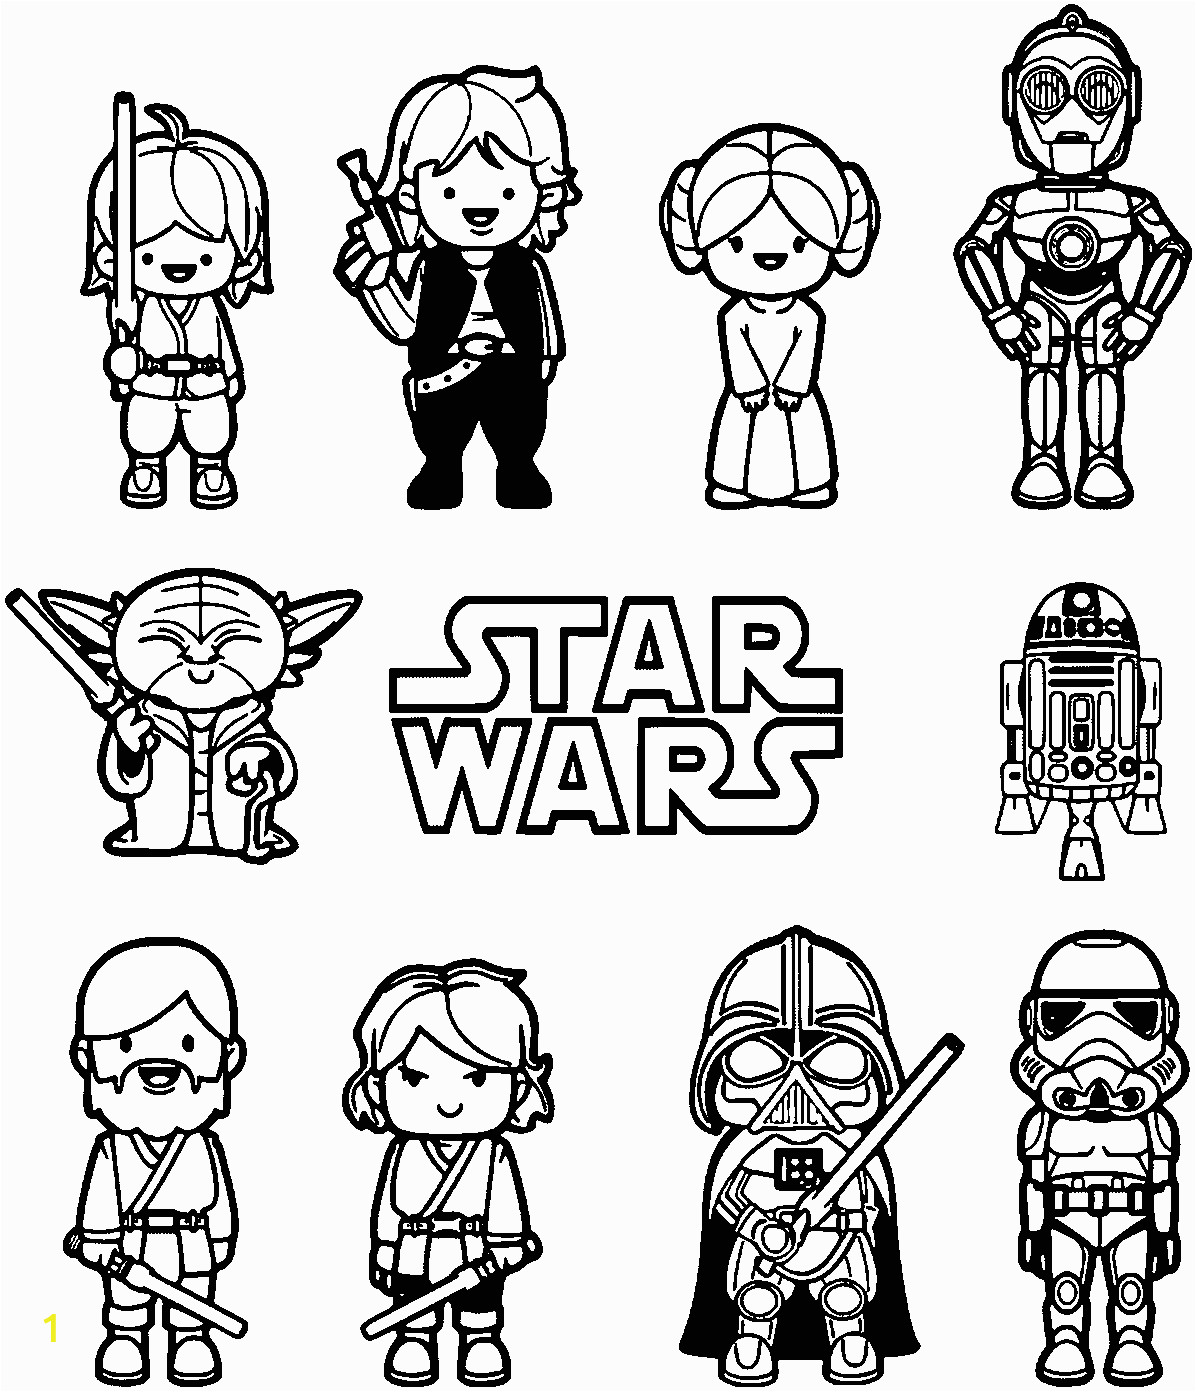 Star Wars Coloring Pages for Kids Star Wars Coloring Pages Luke Skywalker Star Wars Coloring